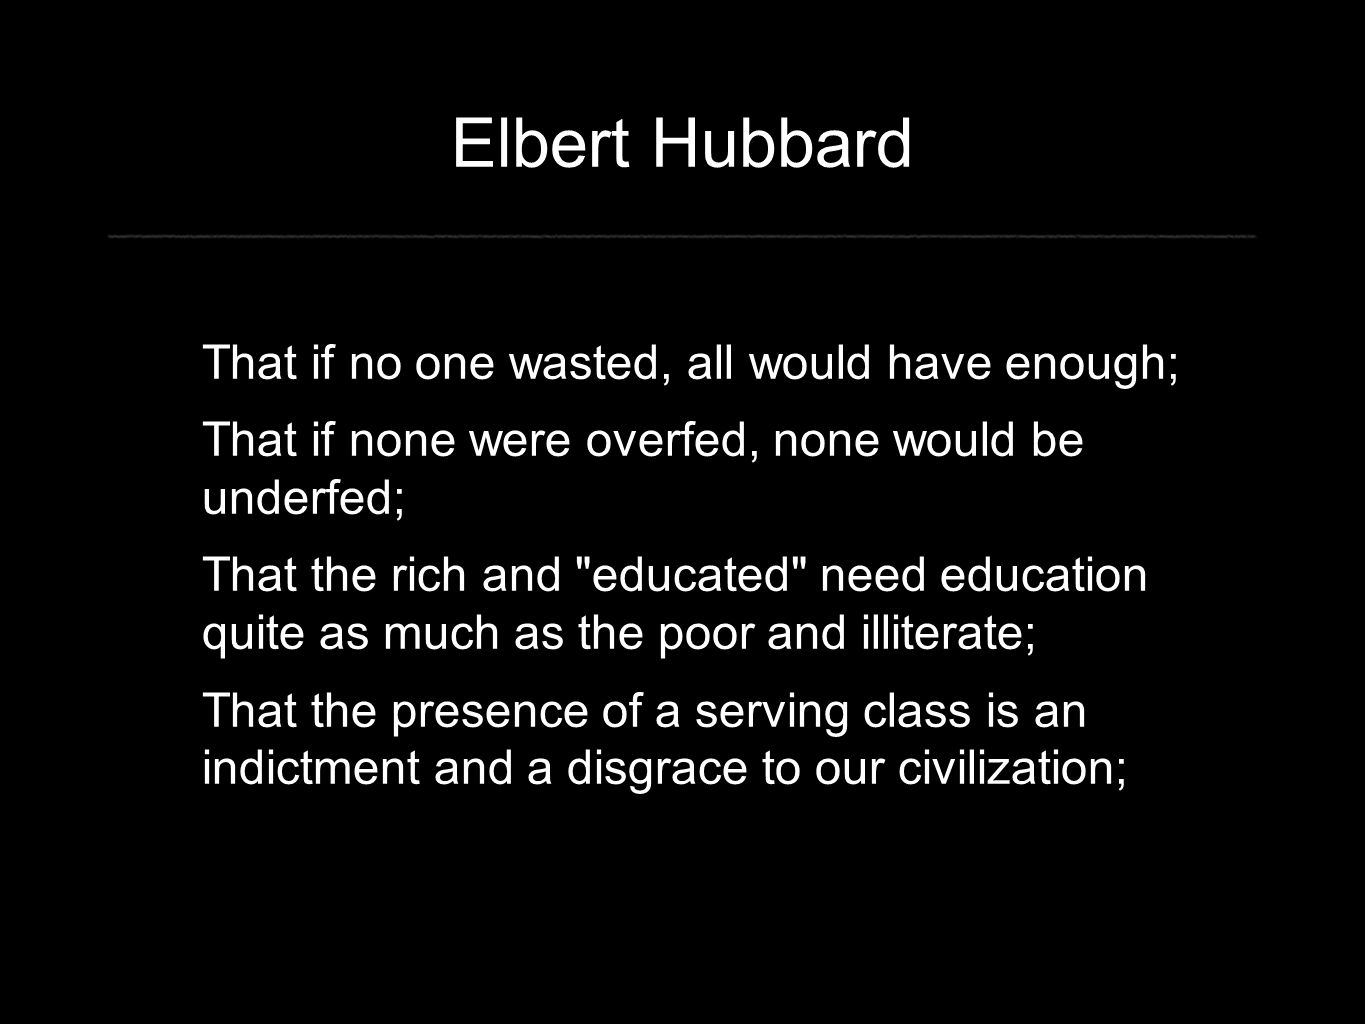 Elbert Hubbard That if no one wasted, all would have enough; That if none were overfed, none would be underfed; That the rich and educated need education quite as much as the poor and illiterate; That the presence of a serving class is an indictment and a disgrace to our civilization;